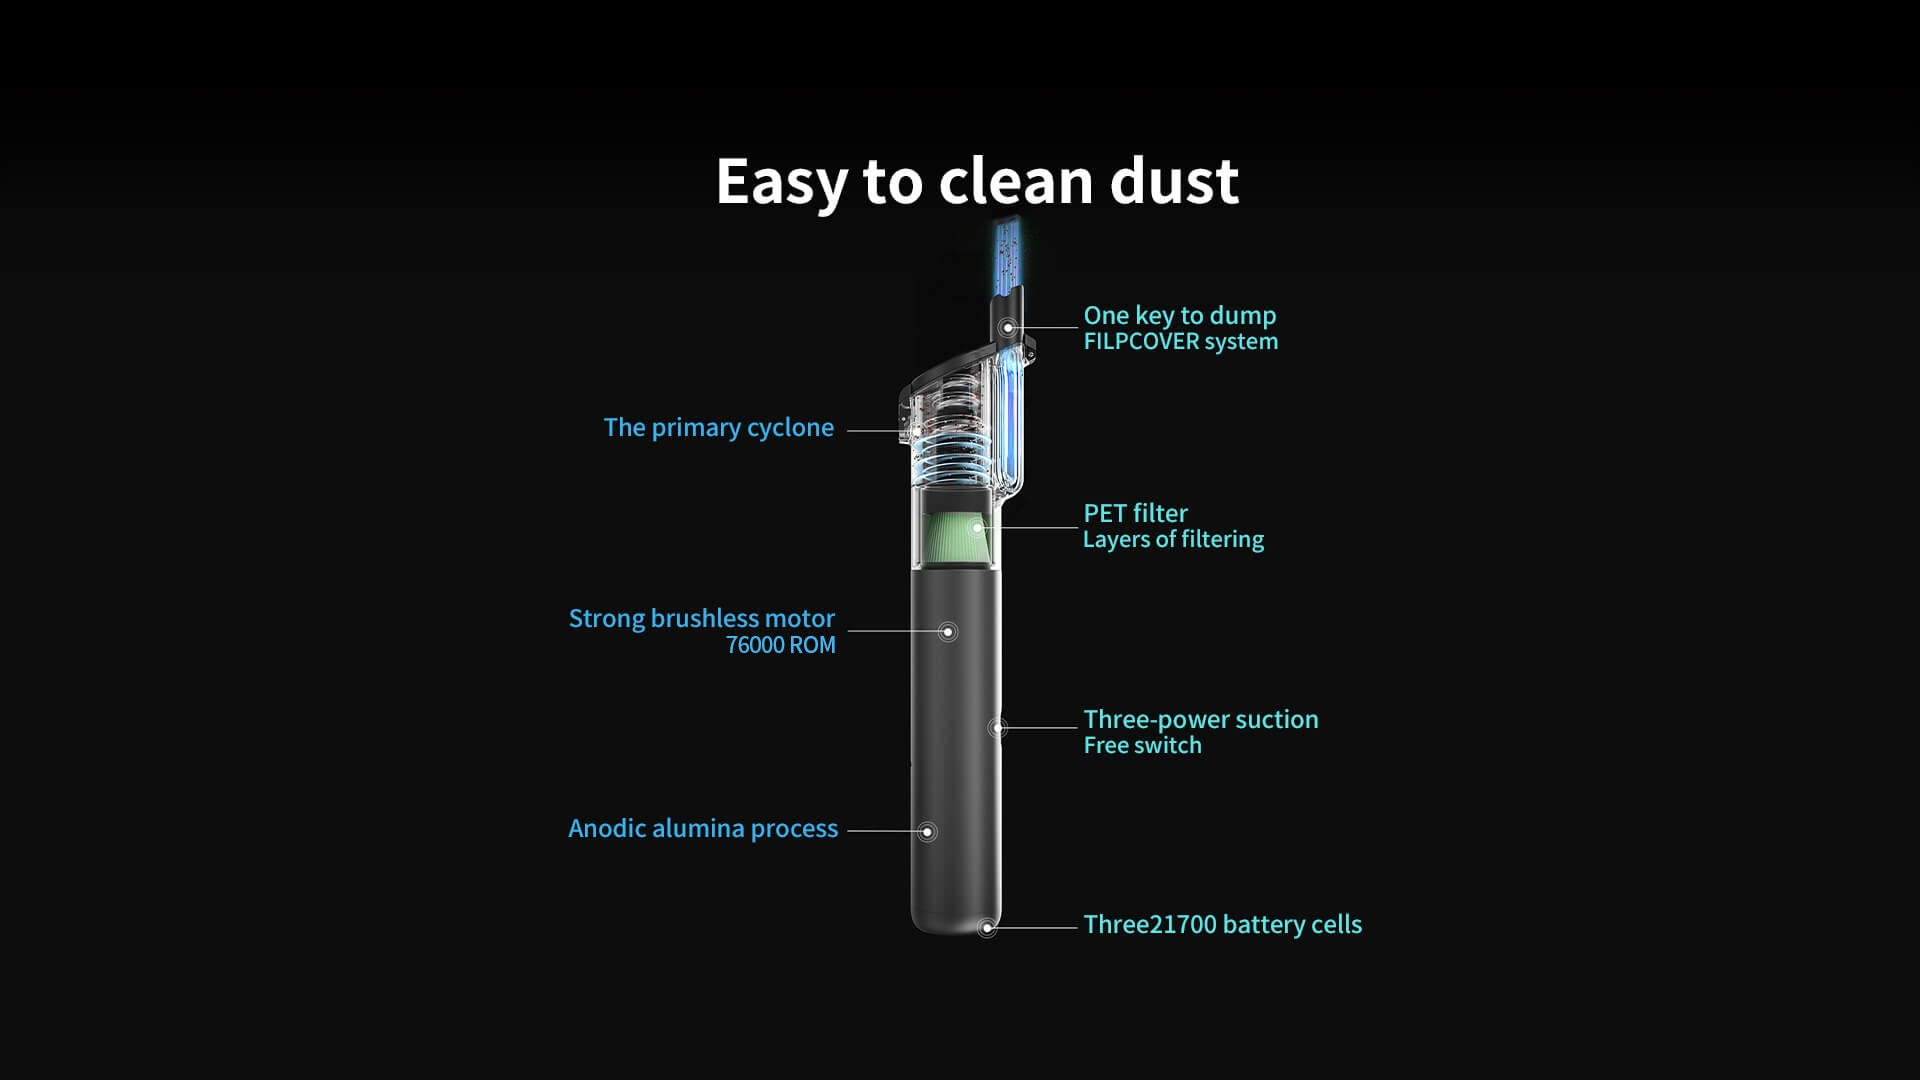 Easy to clean dust. One key to dump FILPCOVER system. The primary cyclone. PET filter Layers of filtering. Strong brushless motor 76000ROM. Three-power suction Free switch Anodic alumina process Three 21700 battery cells